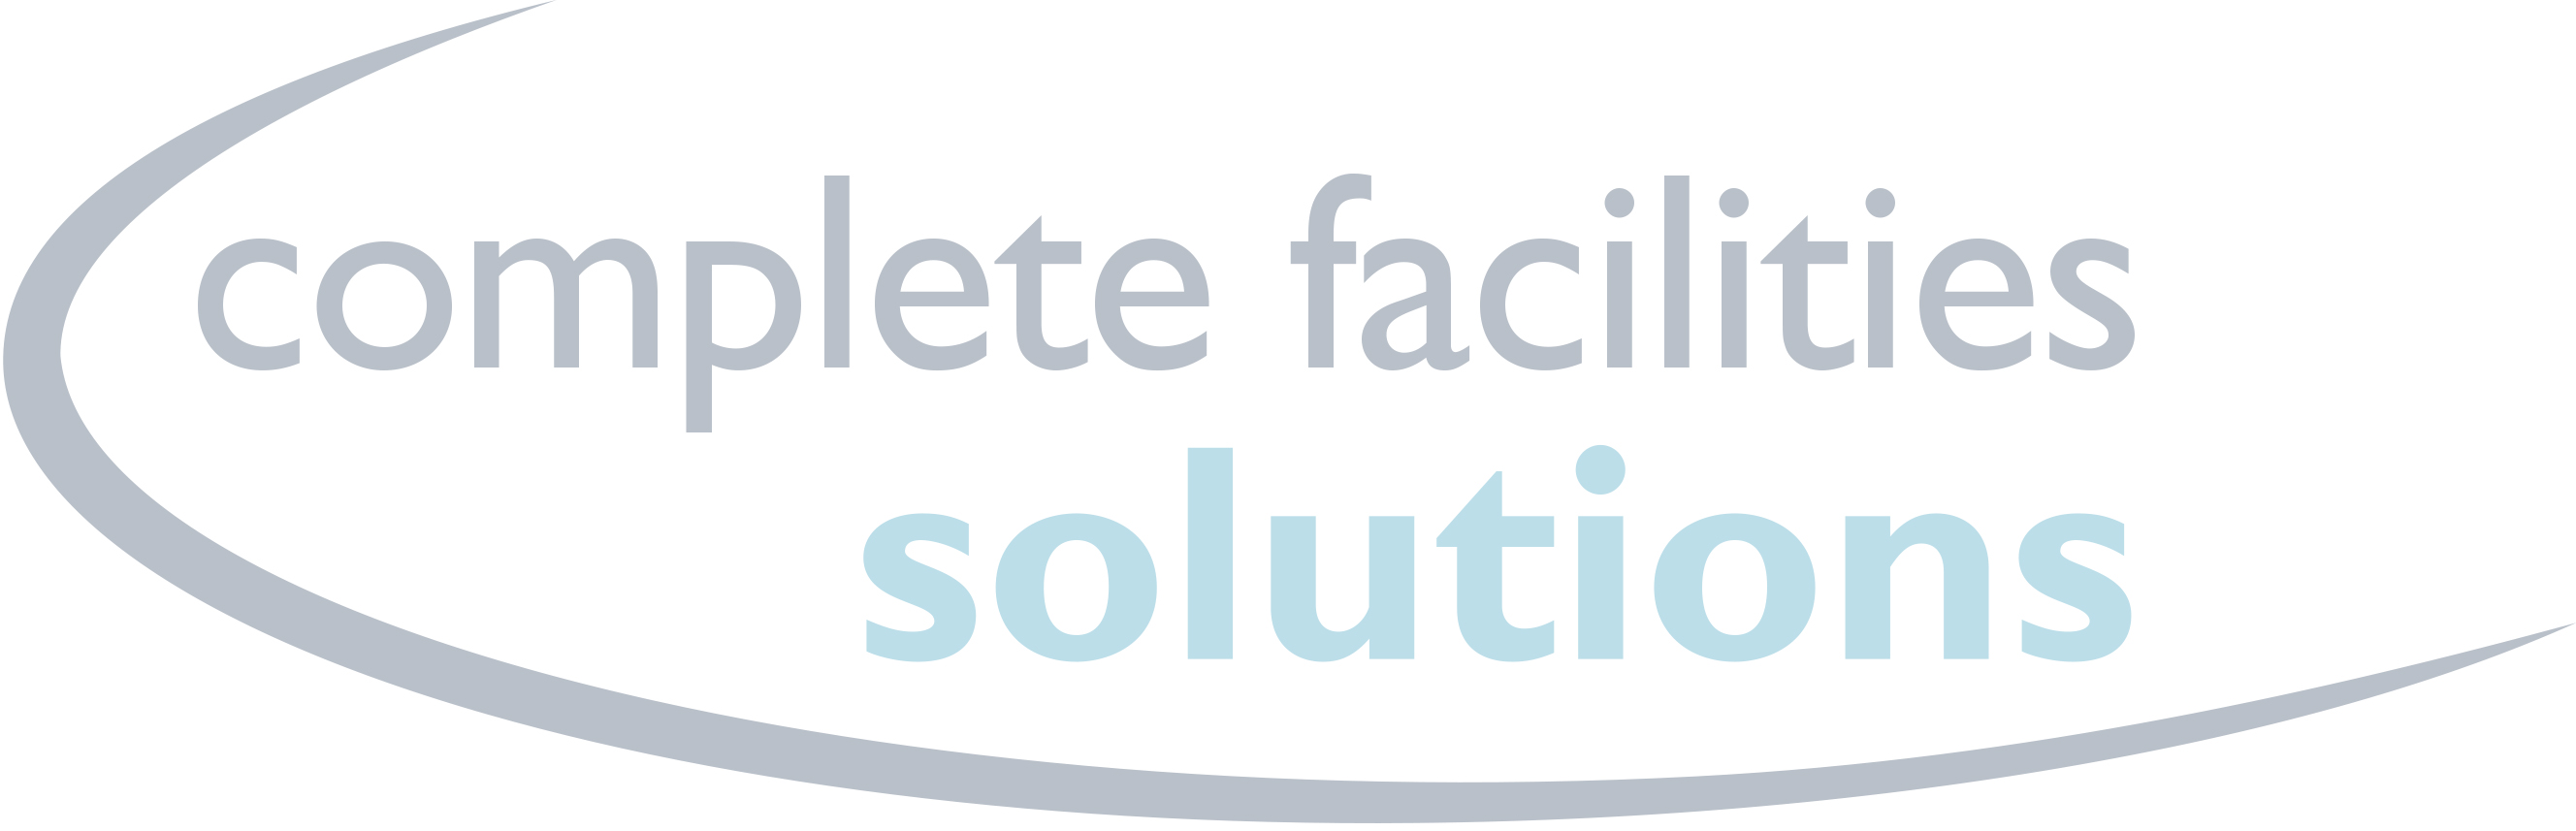 Facilities solutions